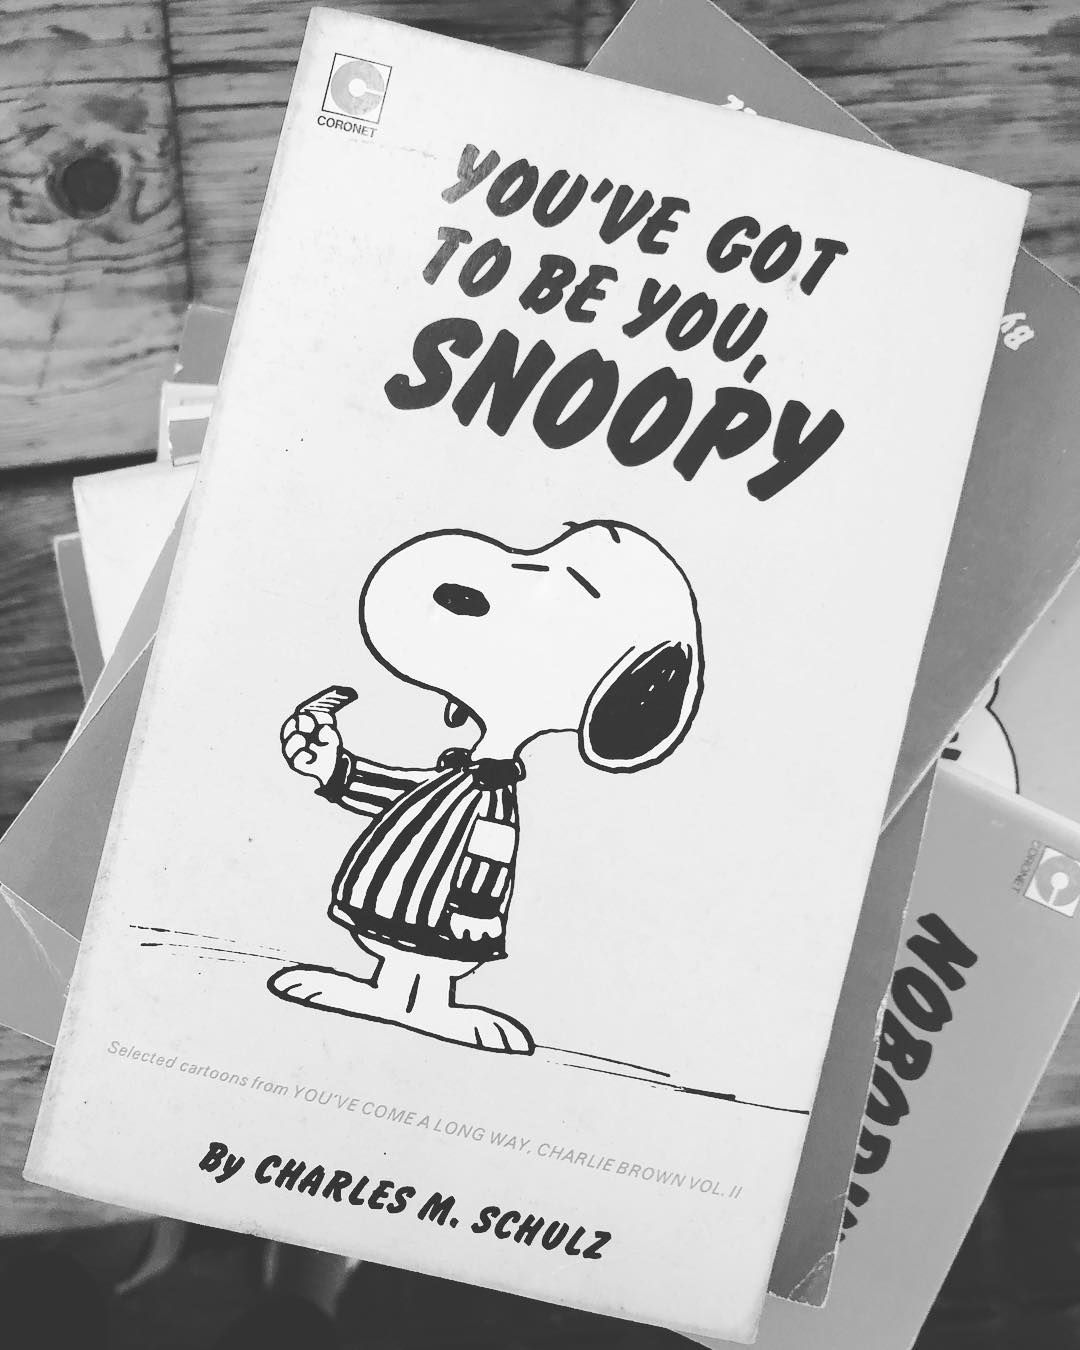 Wise words    #snoopy #peanuts #eggshop #christmas #books